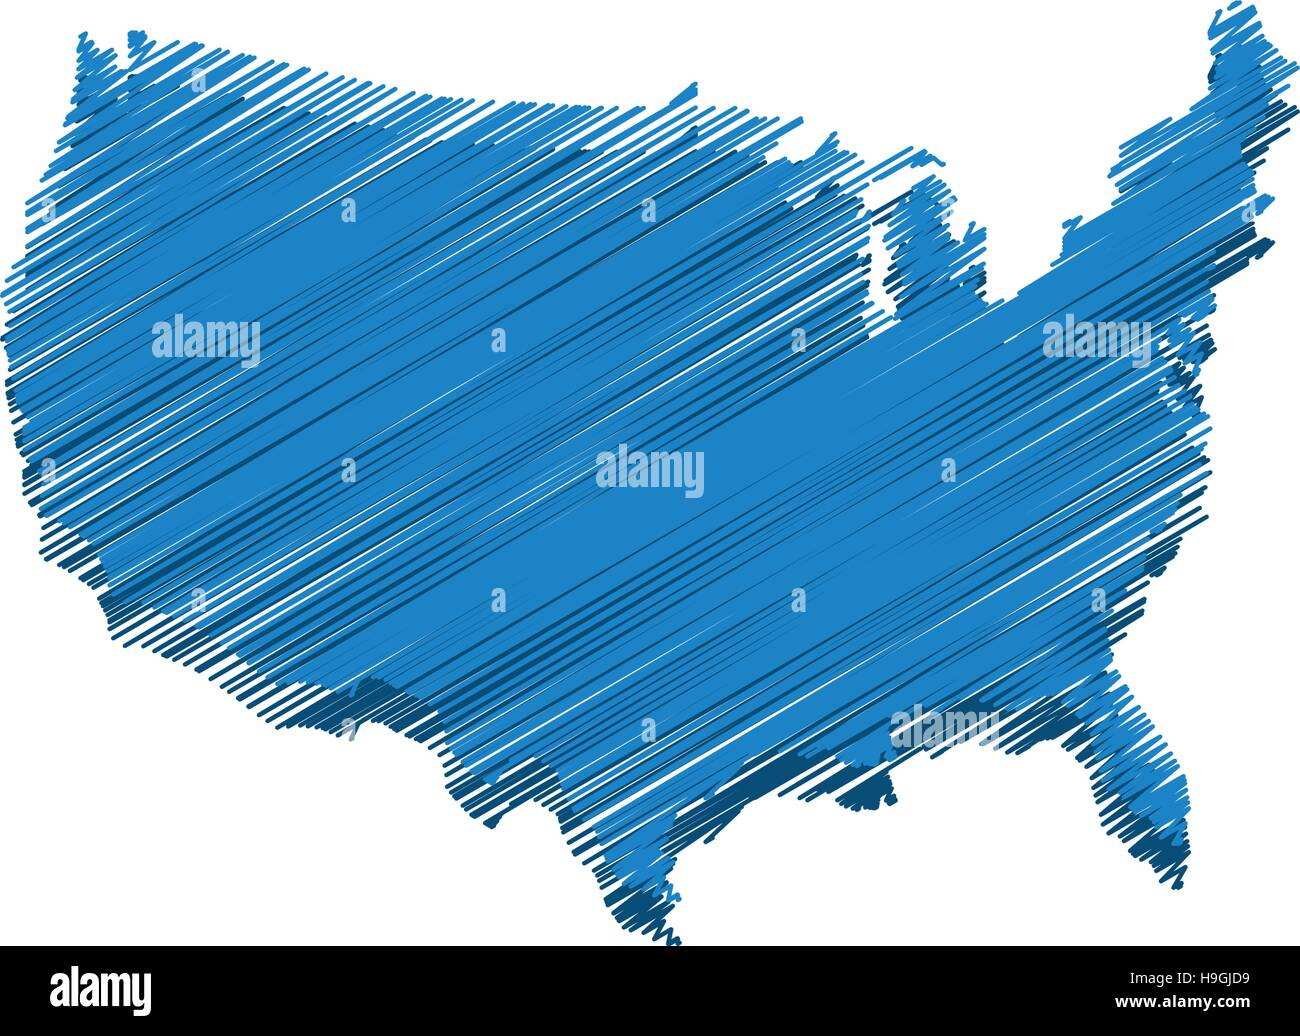 united states of america map Stock Vector